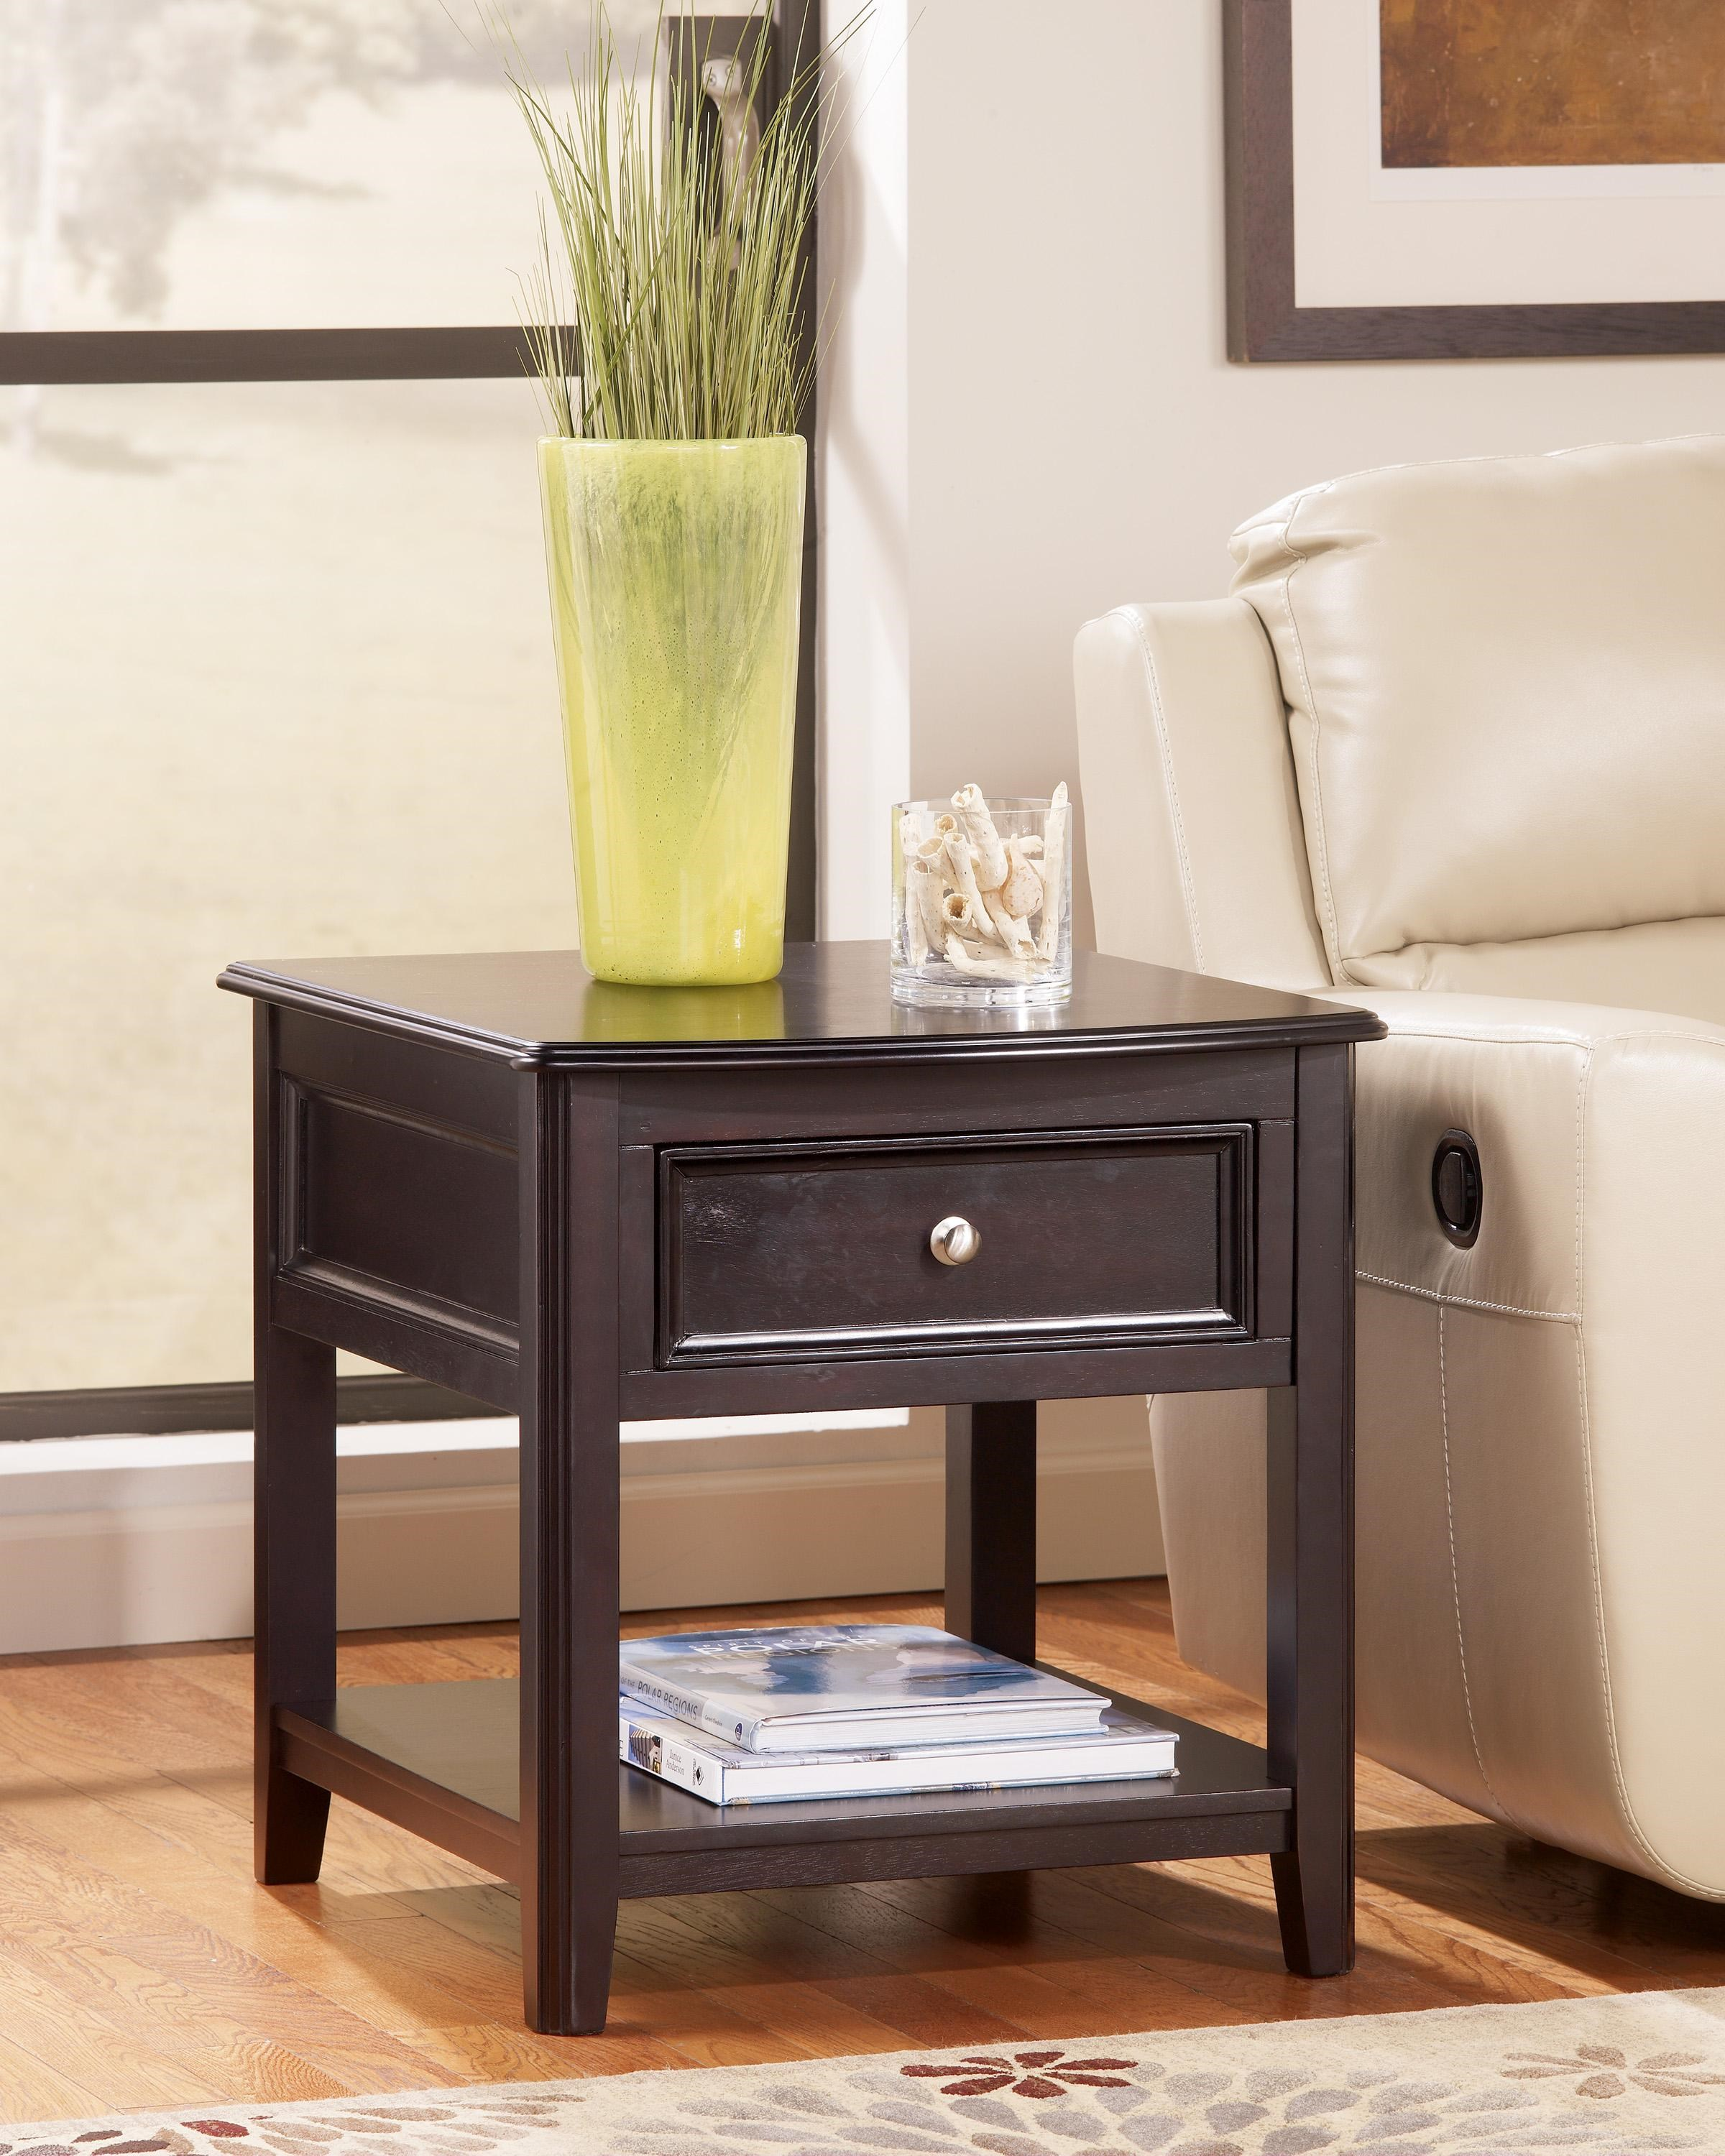 Carlyle T771 3 Rectangular End Table With Drawer And Bottom Shelf By  Signature Design By Ashley